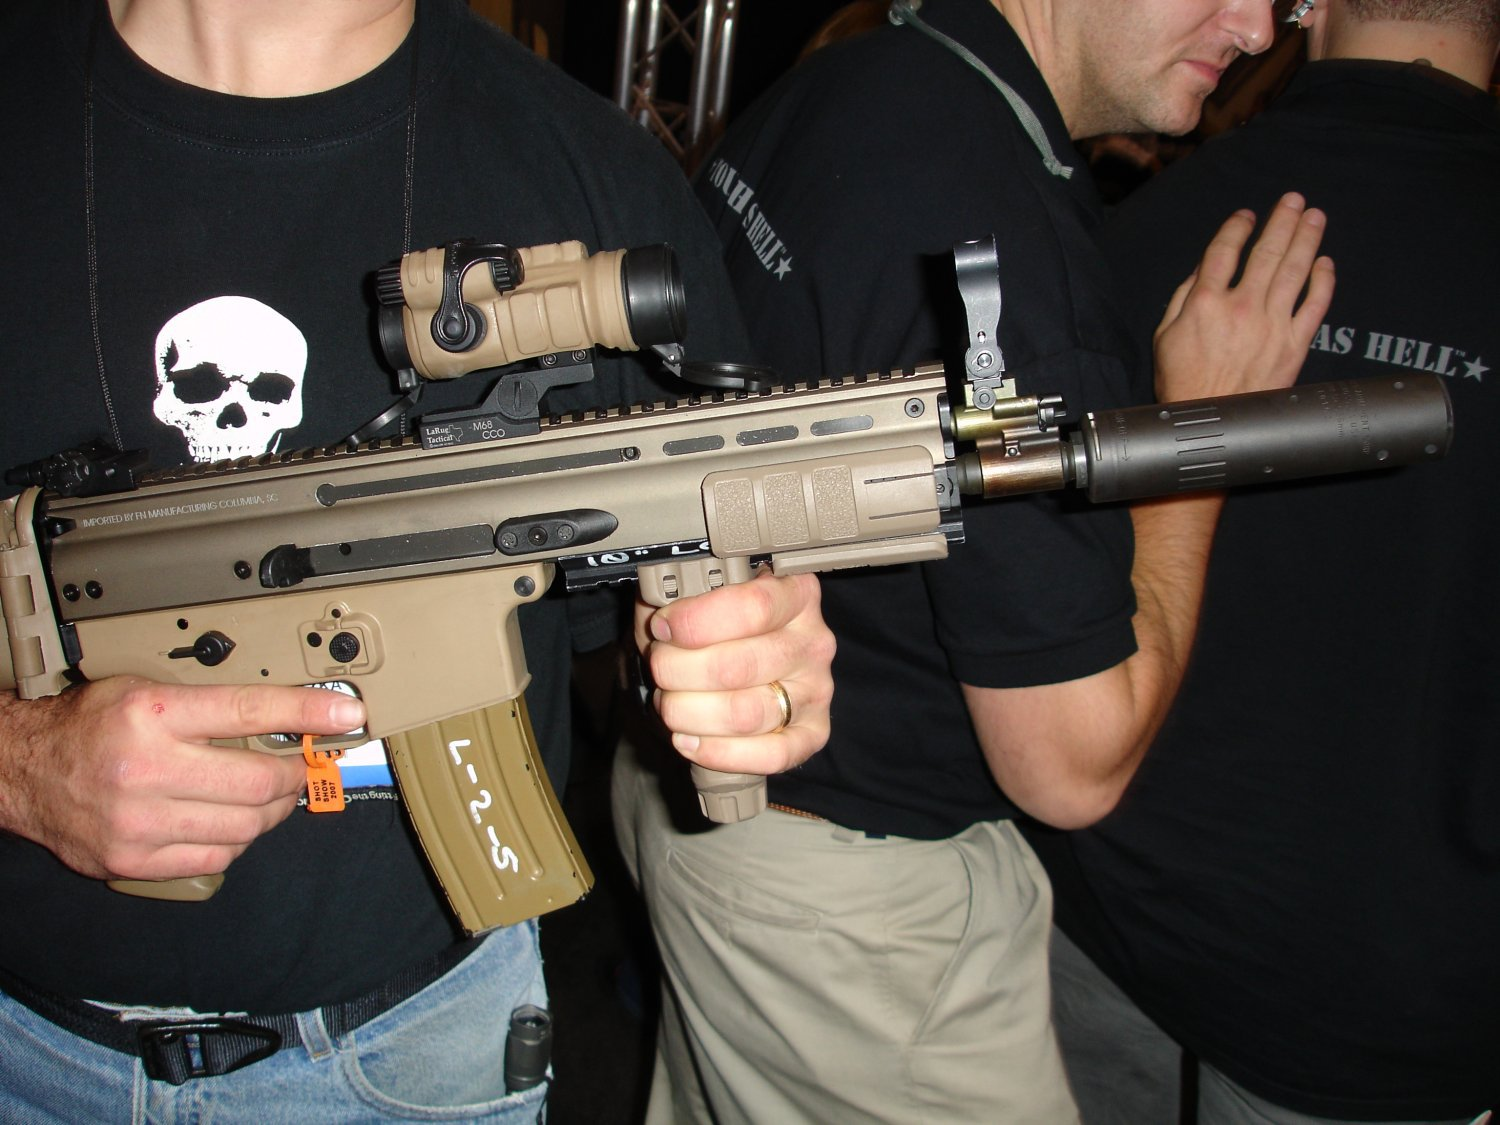 FN MK16 SCAR L with AAC Silencer Sound Suppressor SHOT Show 2007 1 <!  :en  >SOCOM Cancels FN Mk 16 SCAR L (SCAR Light) 5.56mm NATO Rifle/Carbine/SBR Weapons Program. Will the FN Mk 17 SCAR H (SCAR Heavy) 7.62mm NATO Variant Survive? Only the Shadow Knows. <!  :  >